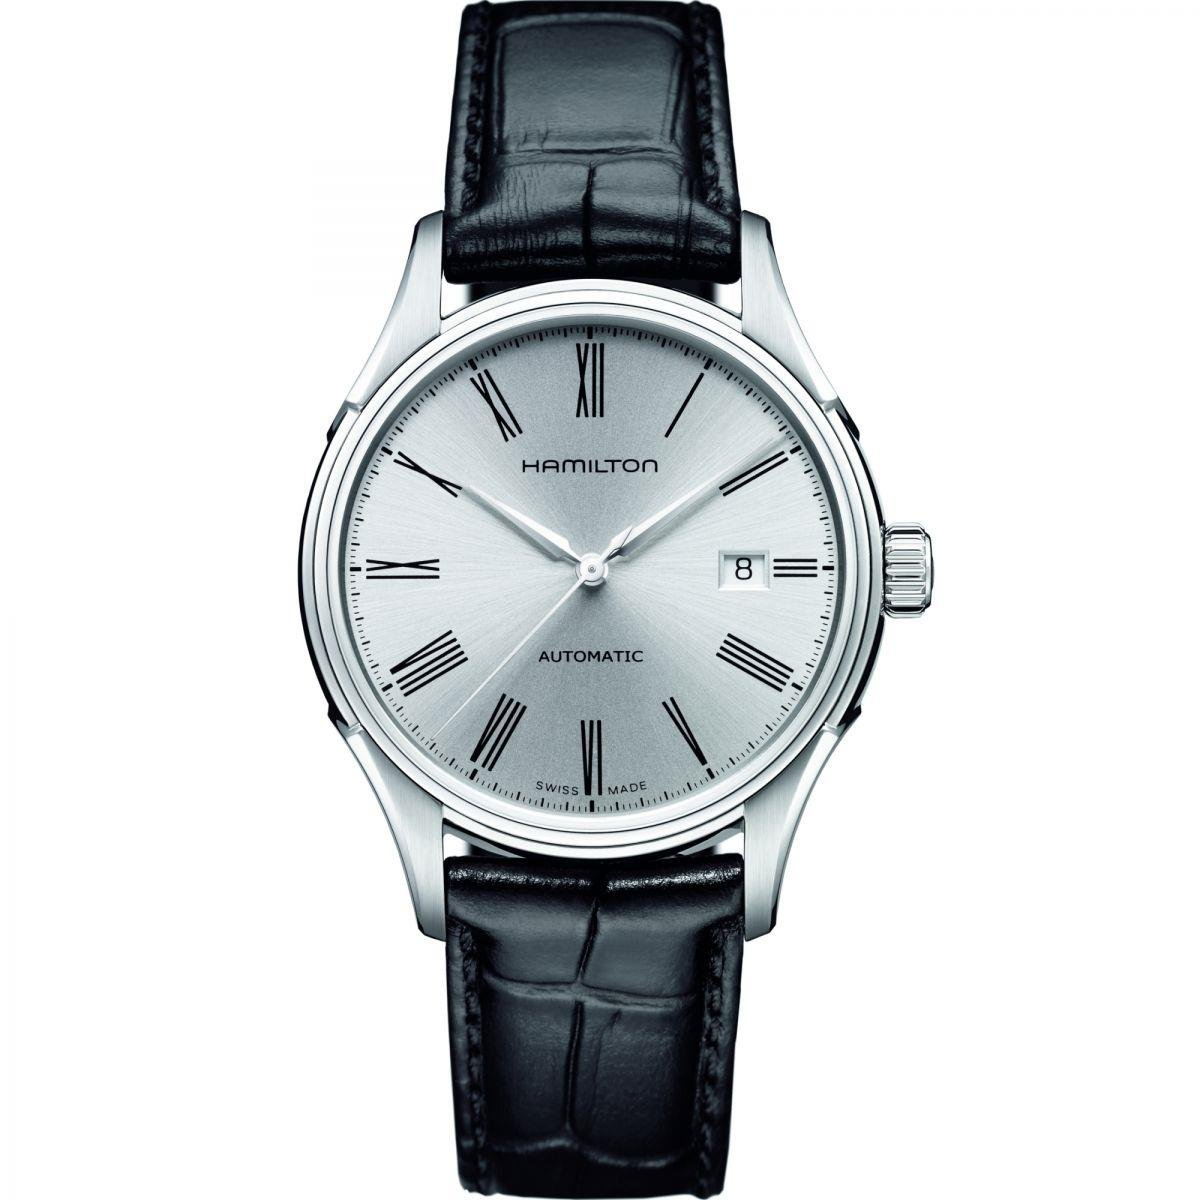 Hamilton Men's Analogue Automatic Watch with Leather Strap H39515754